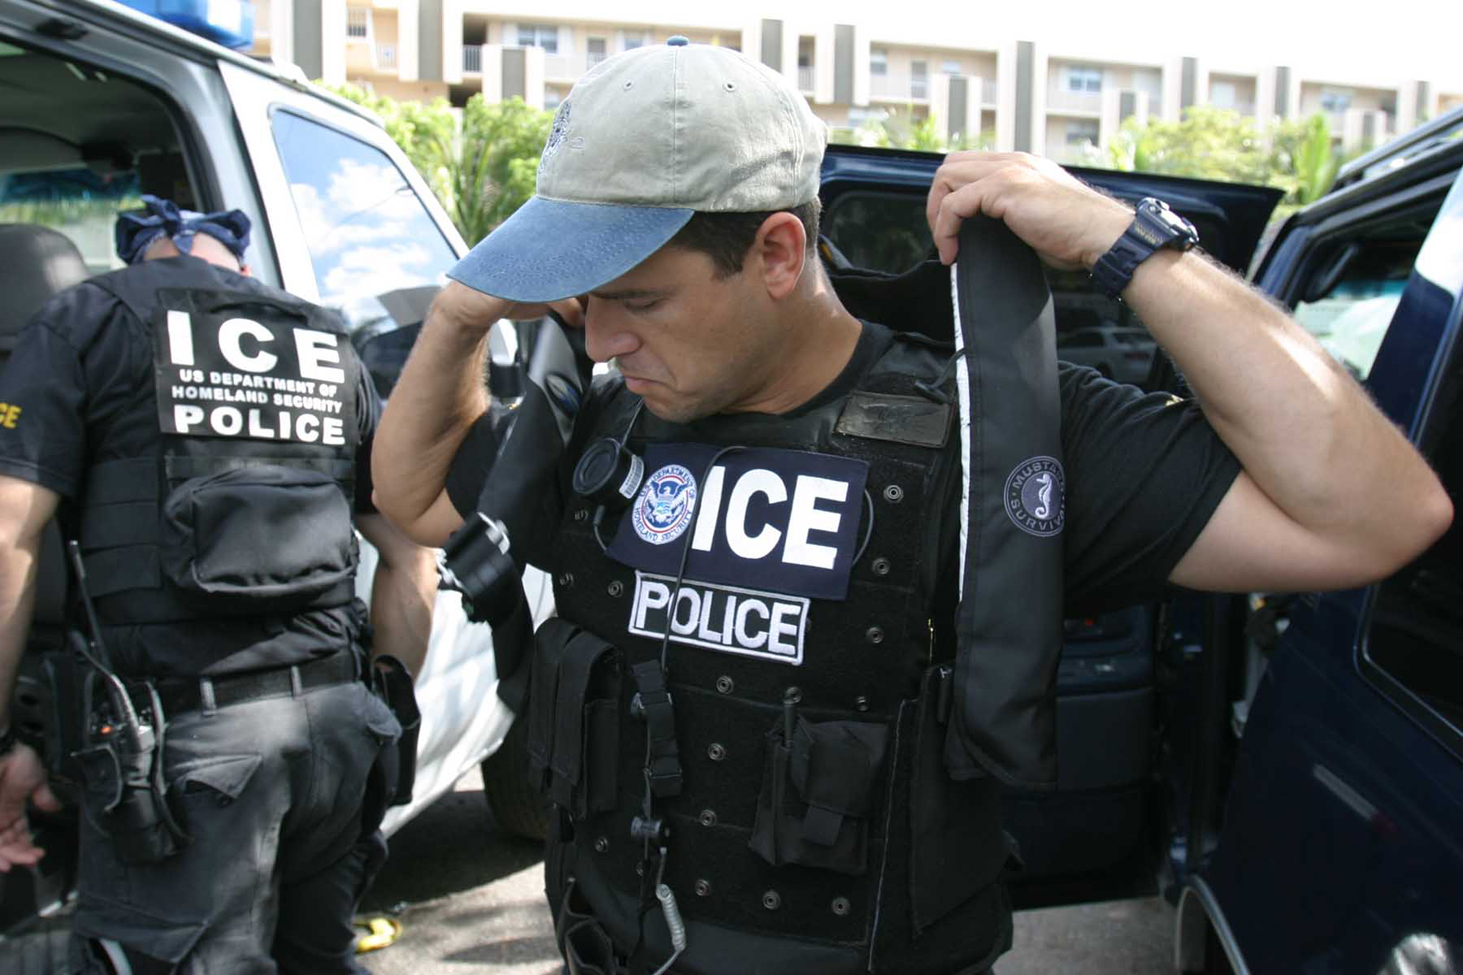 An ICE (Immigration and Customs Enforcement) SWAT unit